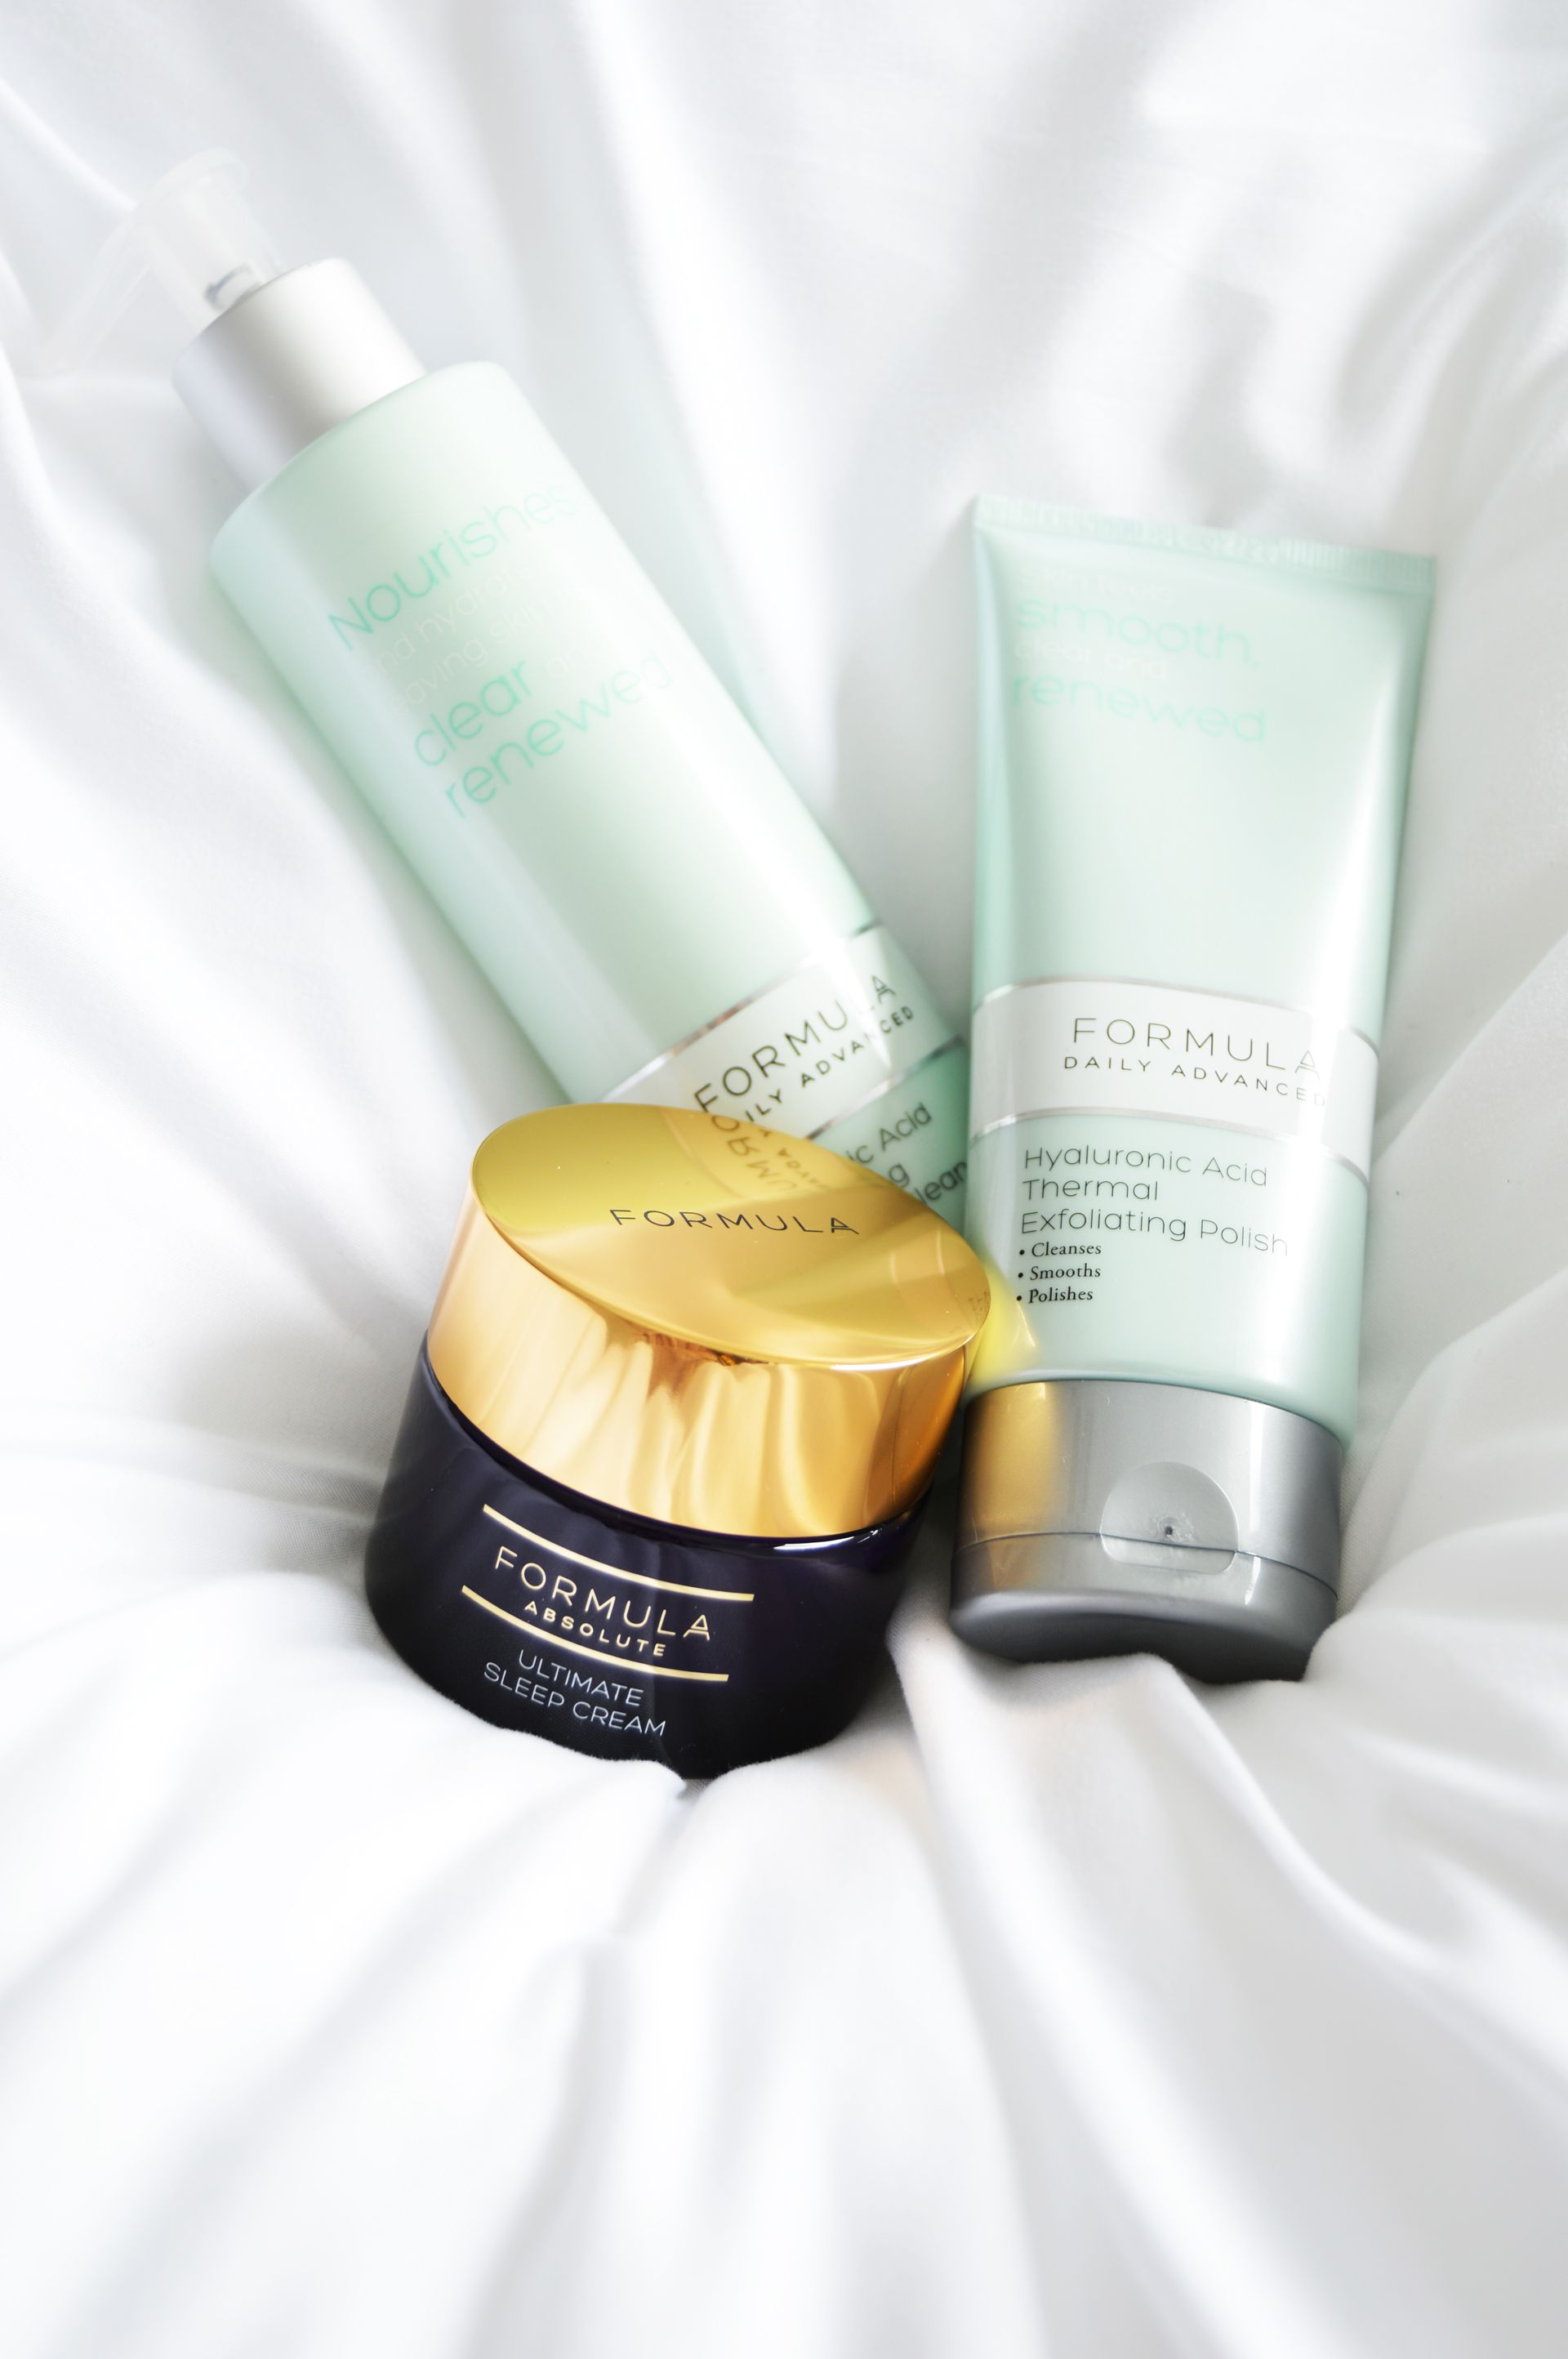 You don't always need to spend tons of money on skincare products. M&S FORMULA Skincare has many products that are reasonably priced and deliver! M&S FORMULA Skincare Review